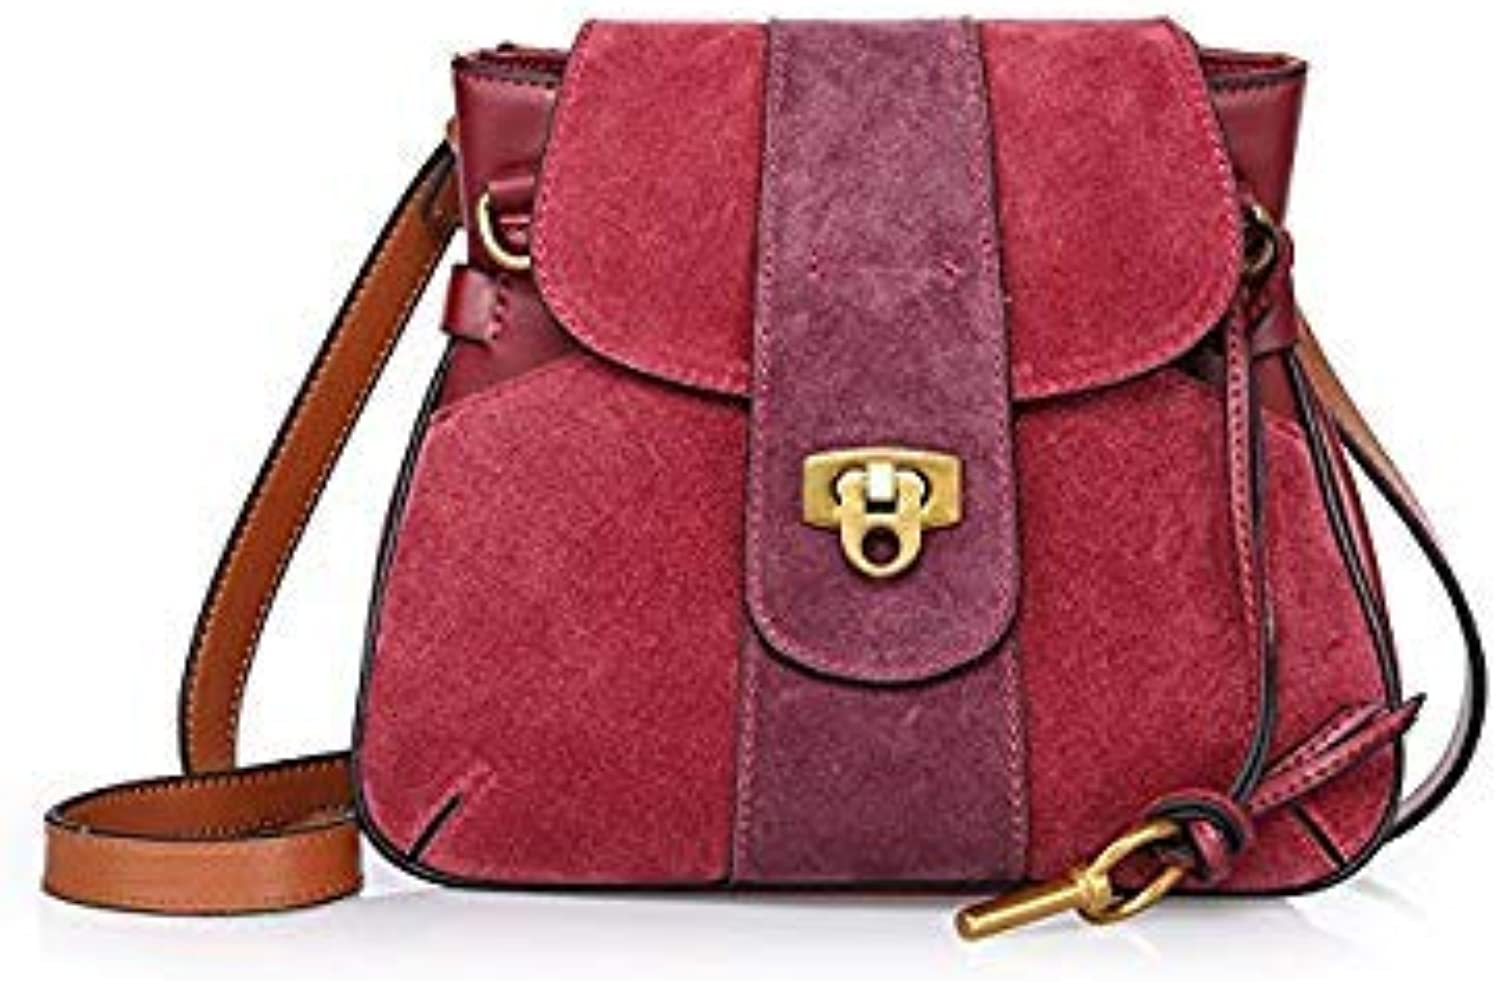 Bloomerang Fair Lady Bag for Birthday Gift Genuine Leather Split Leather Matte Vintage Shoulder Bag Women Party Messenger Crossbody Bags color A